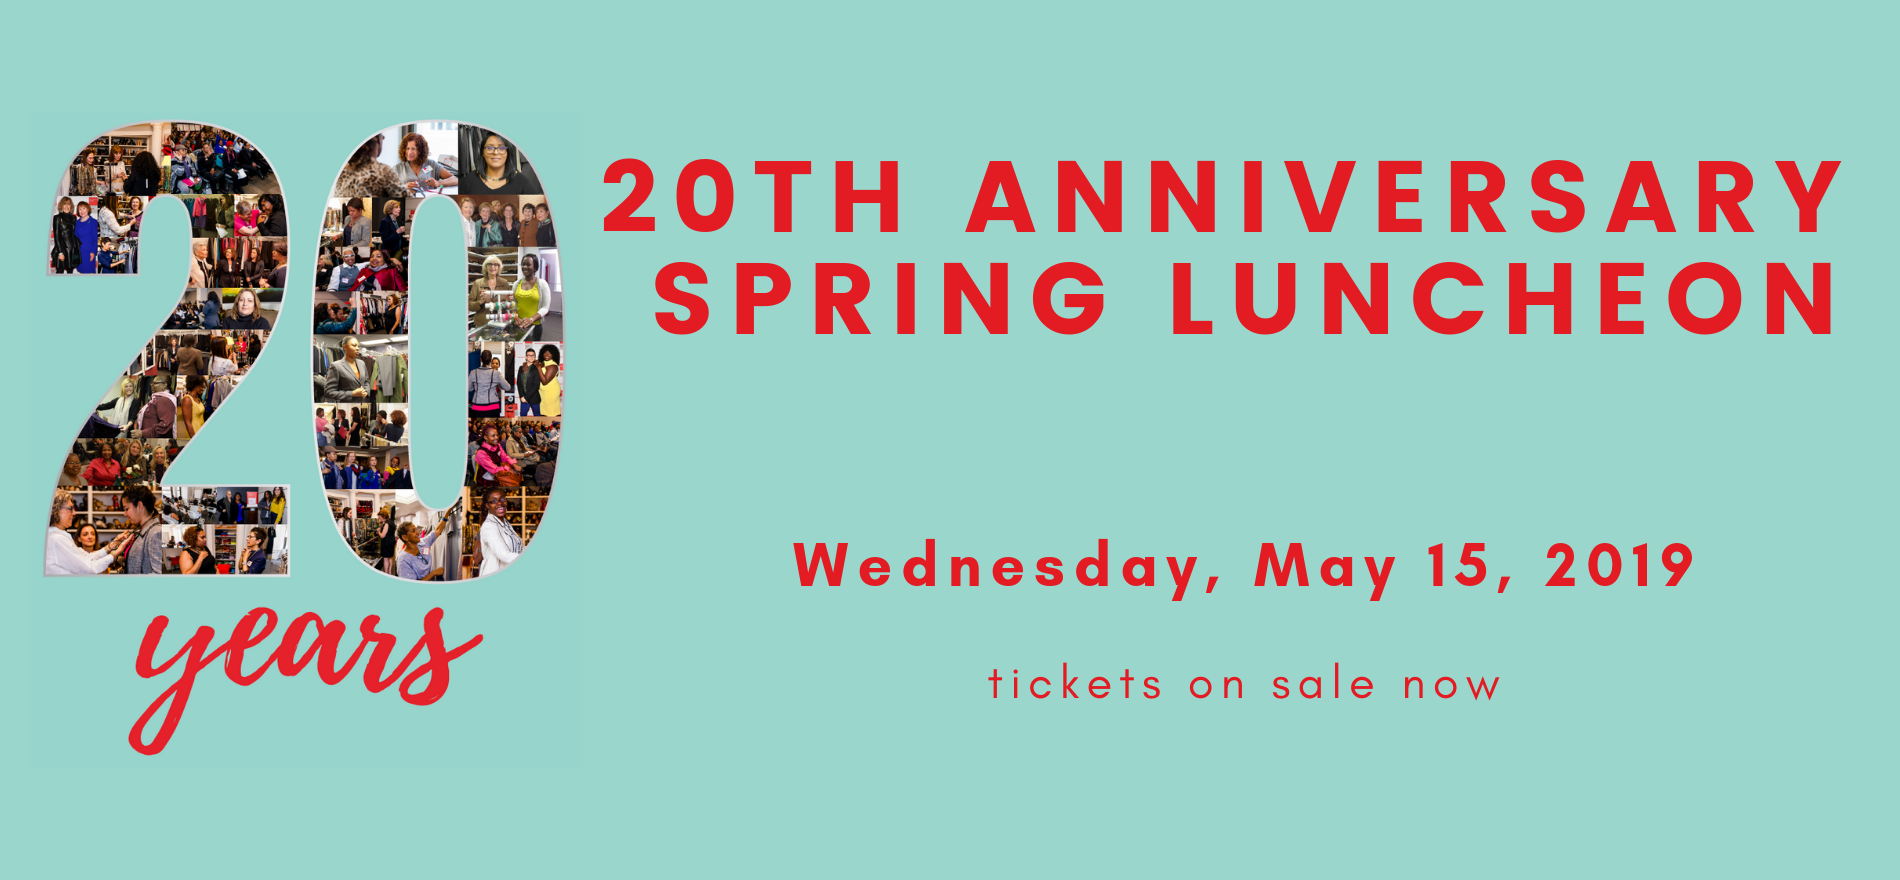 Luncheon Invite Graphic